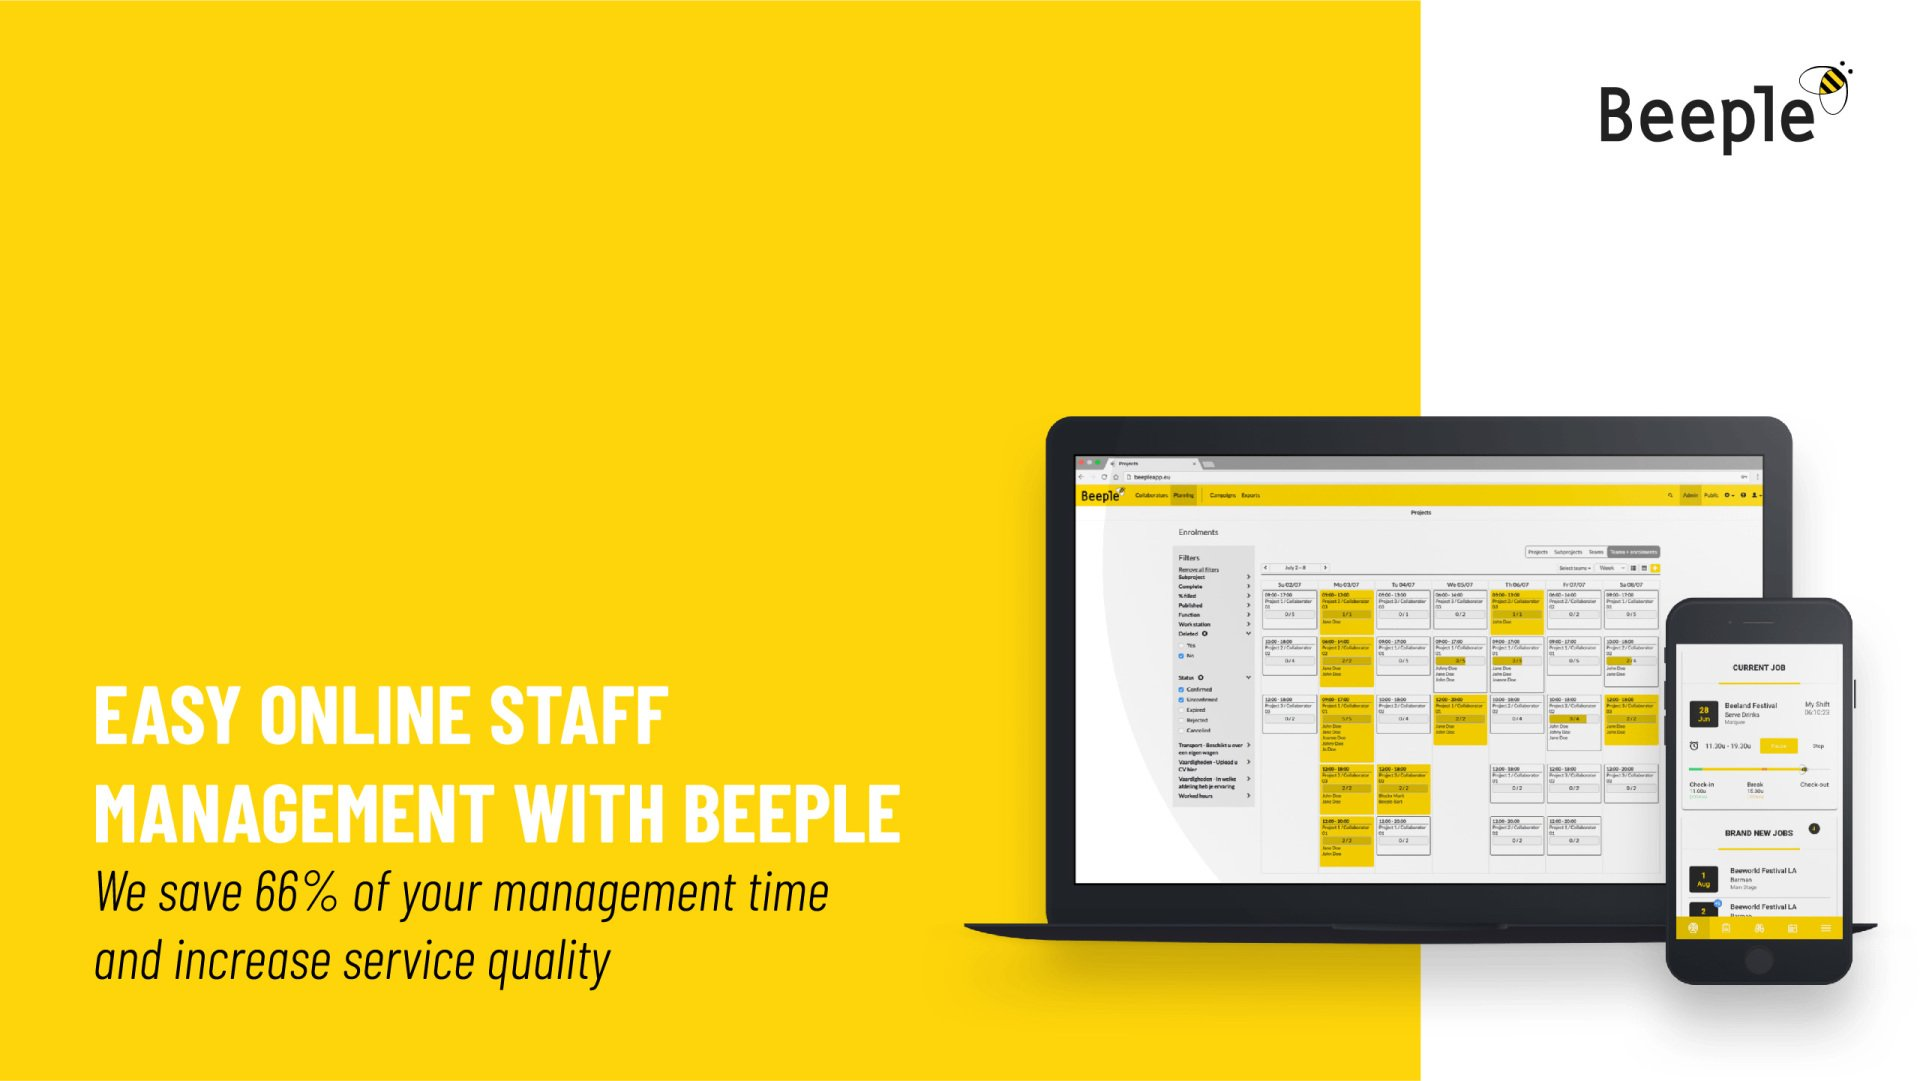 Online staff management and planning tool | Beeple